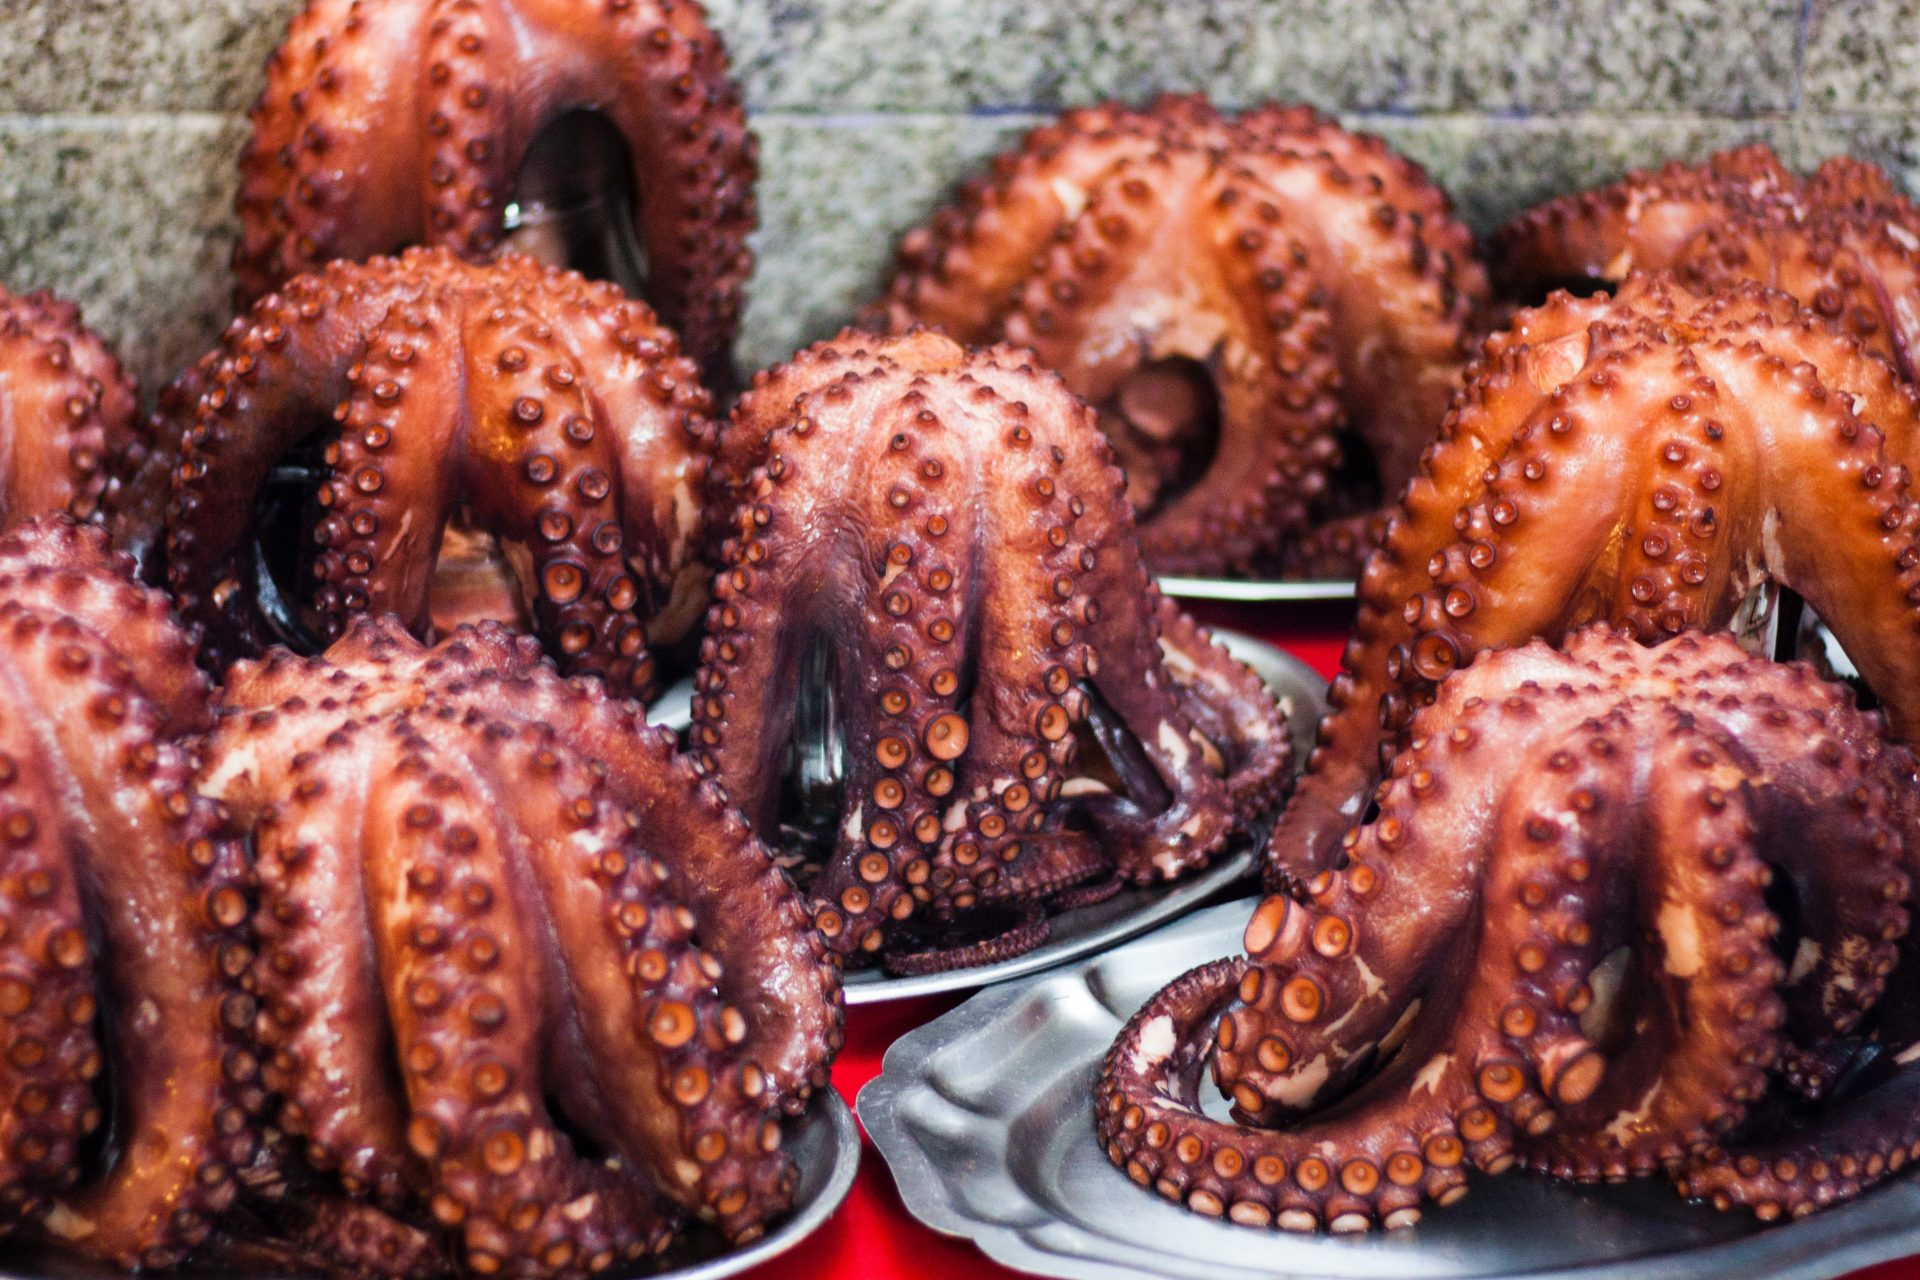 Bunch of octopus on plates.